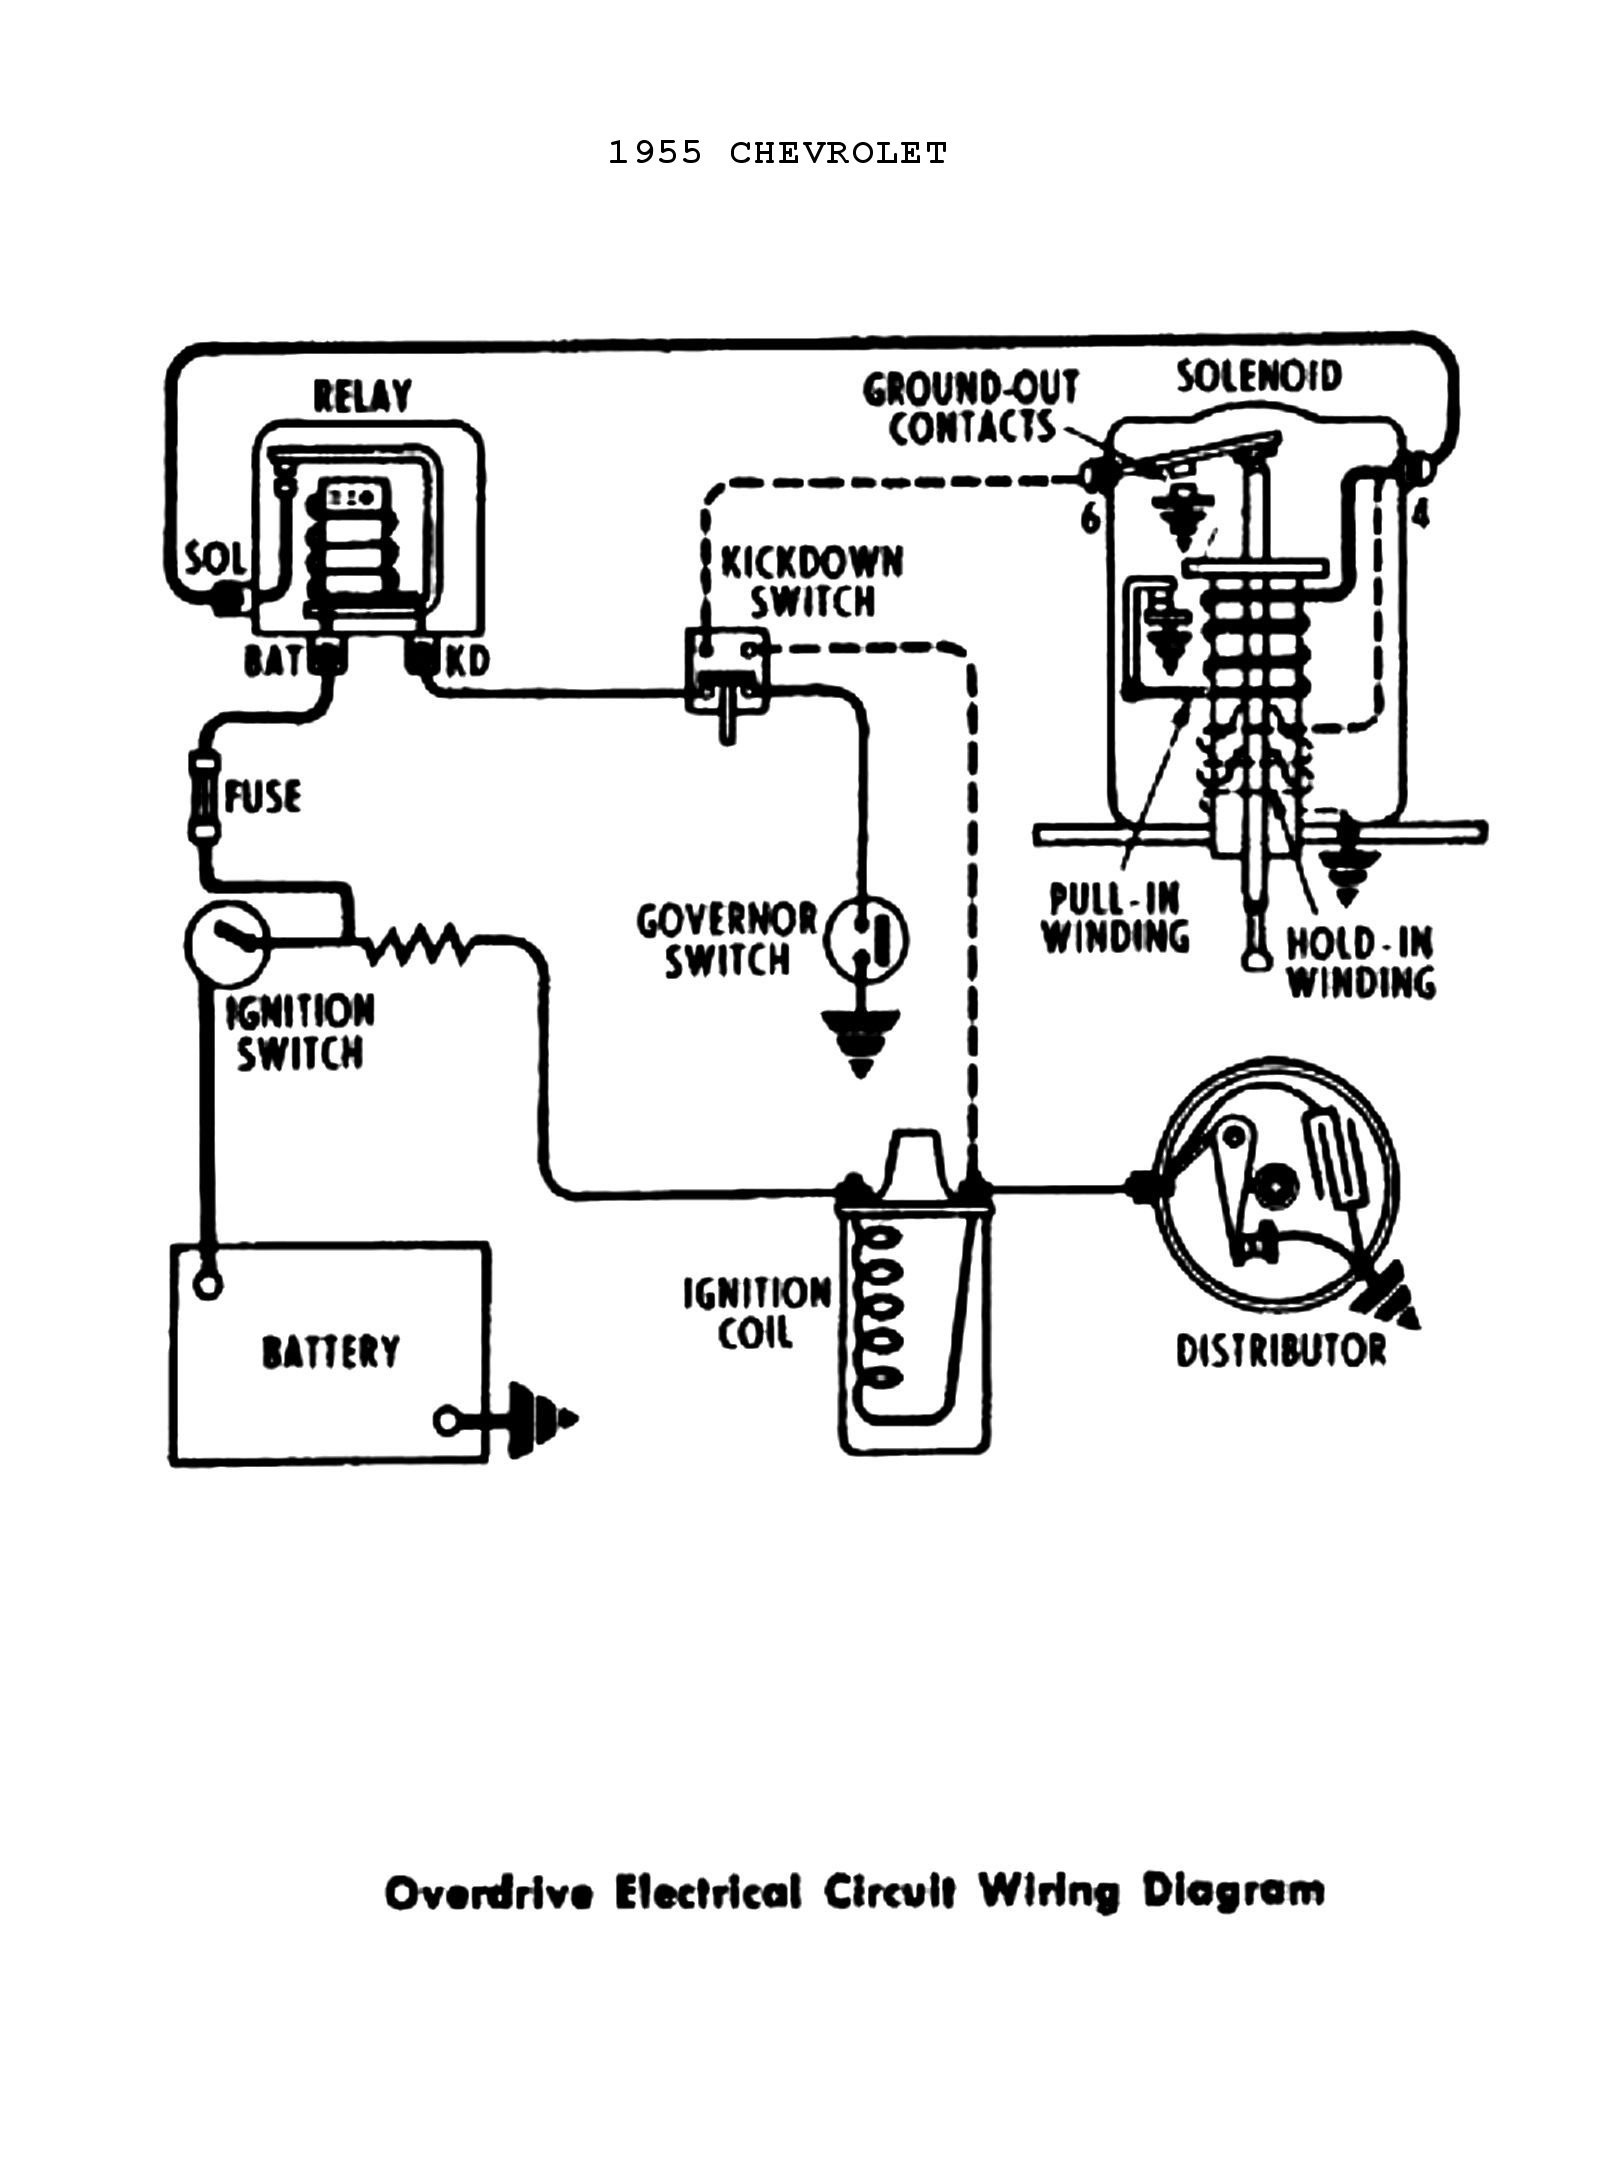 Chevy Silverado Wiring Diagram Chevy Truck Wiring Diagram Moreover 1955  Chevy Ignition Switch Of Chevy Silverado